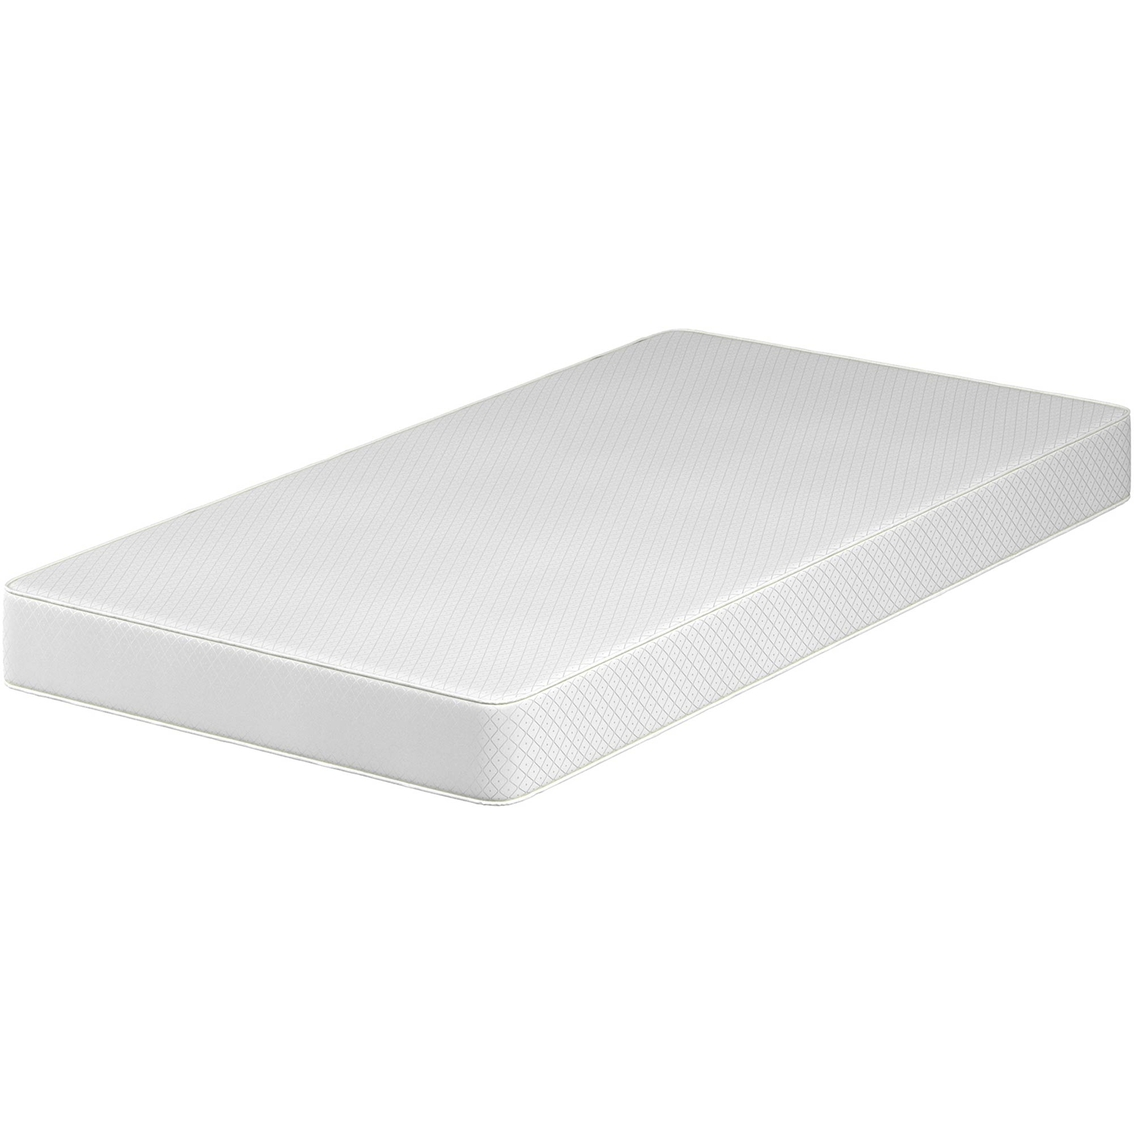 Snuggle Home 6 In Foam Two Sided Bunk Bed Mattress Mattresses